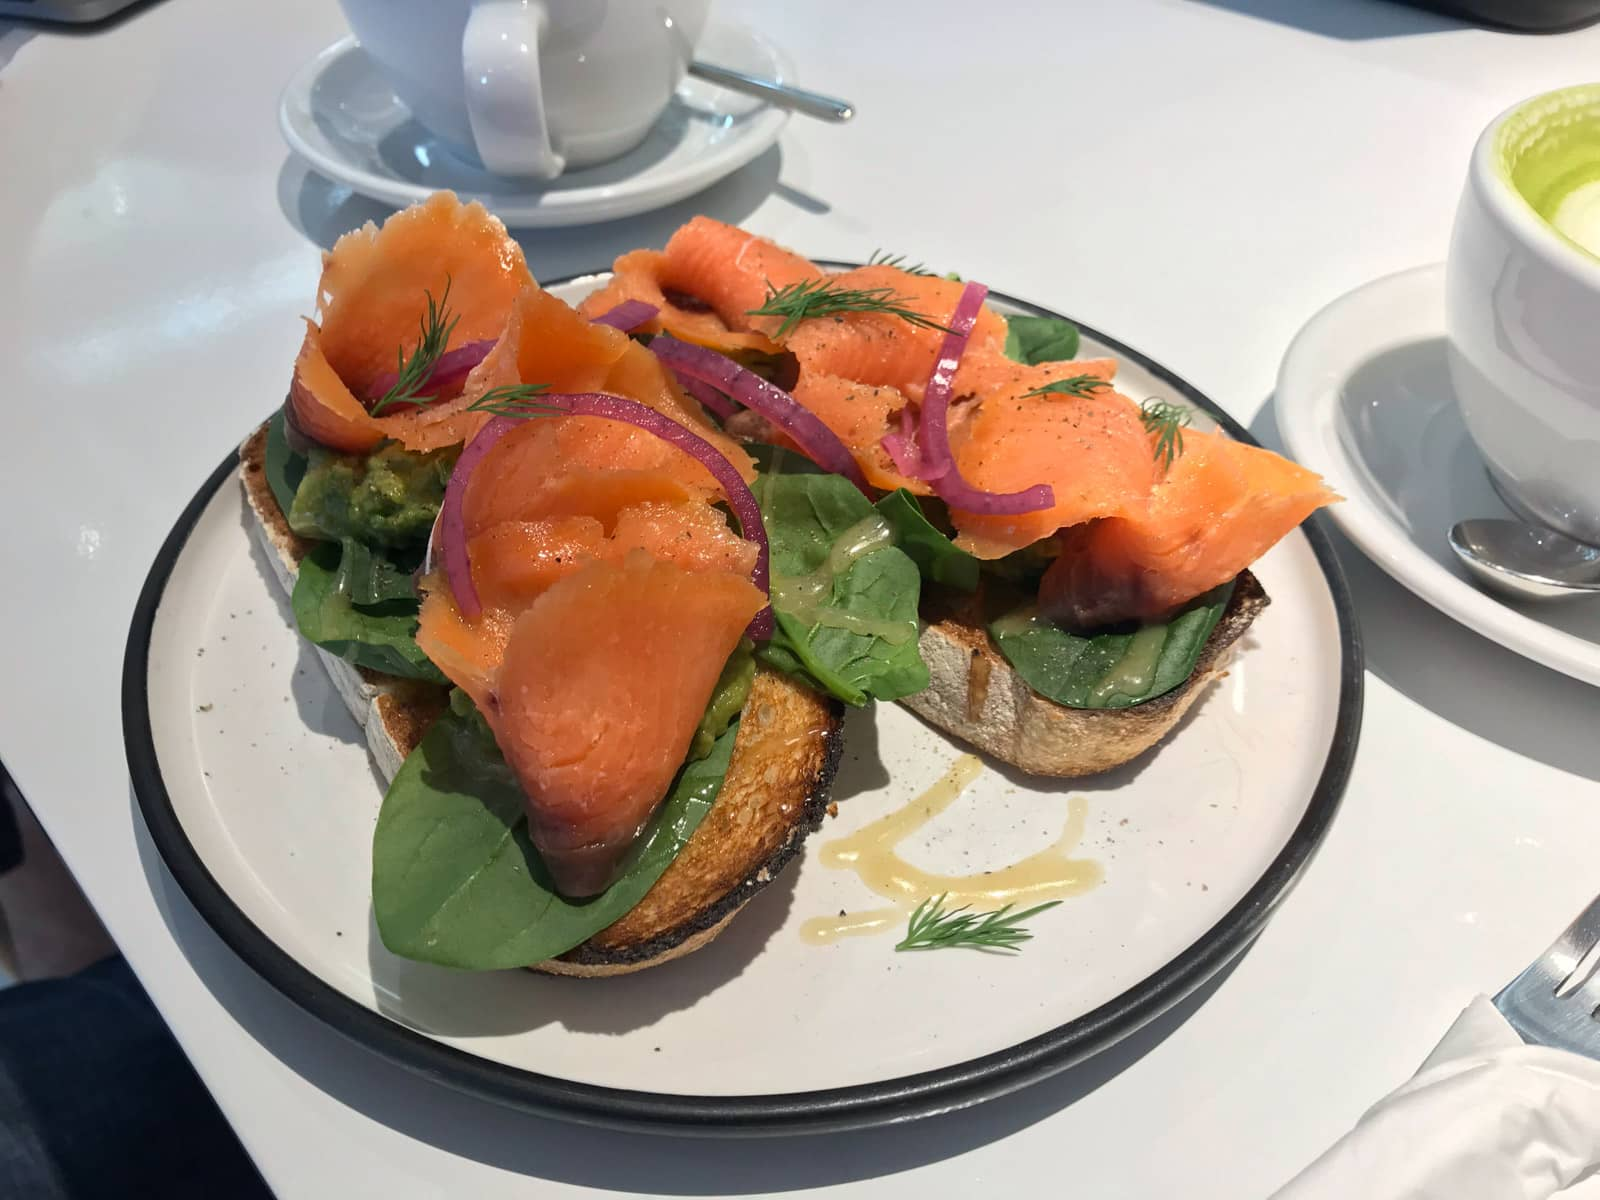 Smoked salmon with spinach served with onion on toasted bread, presented on a round white dish.